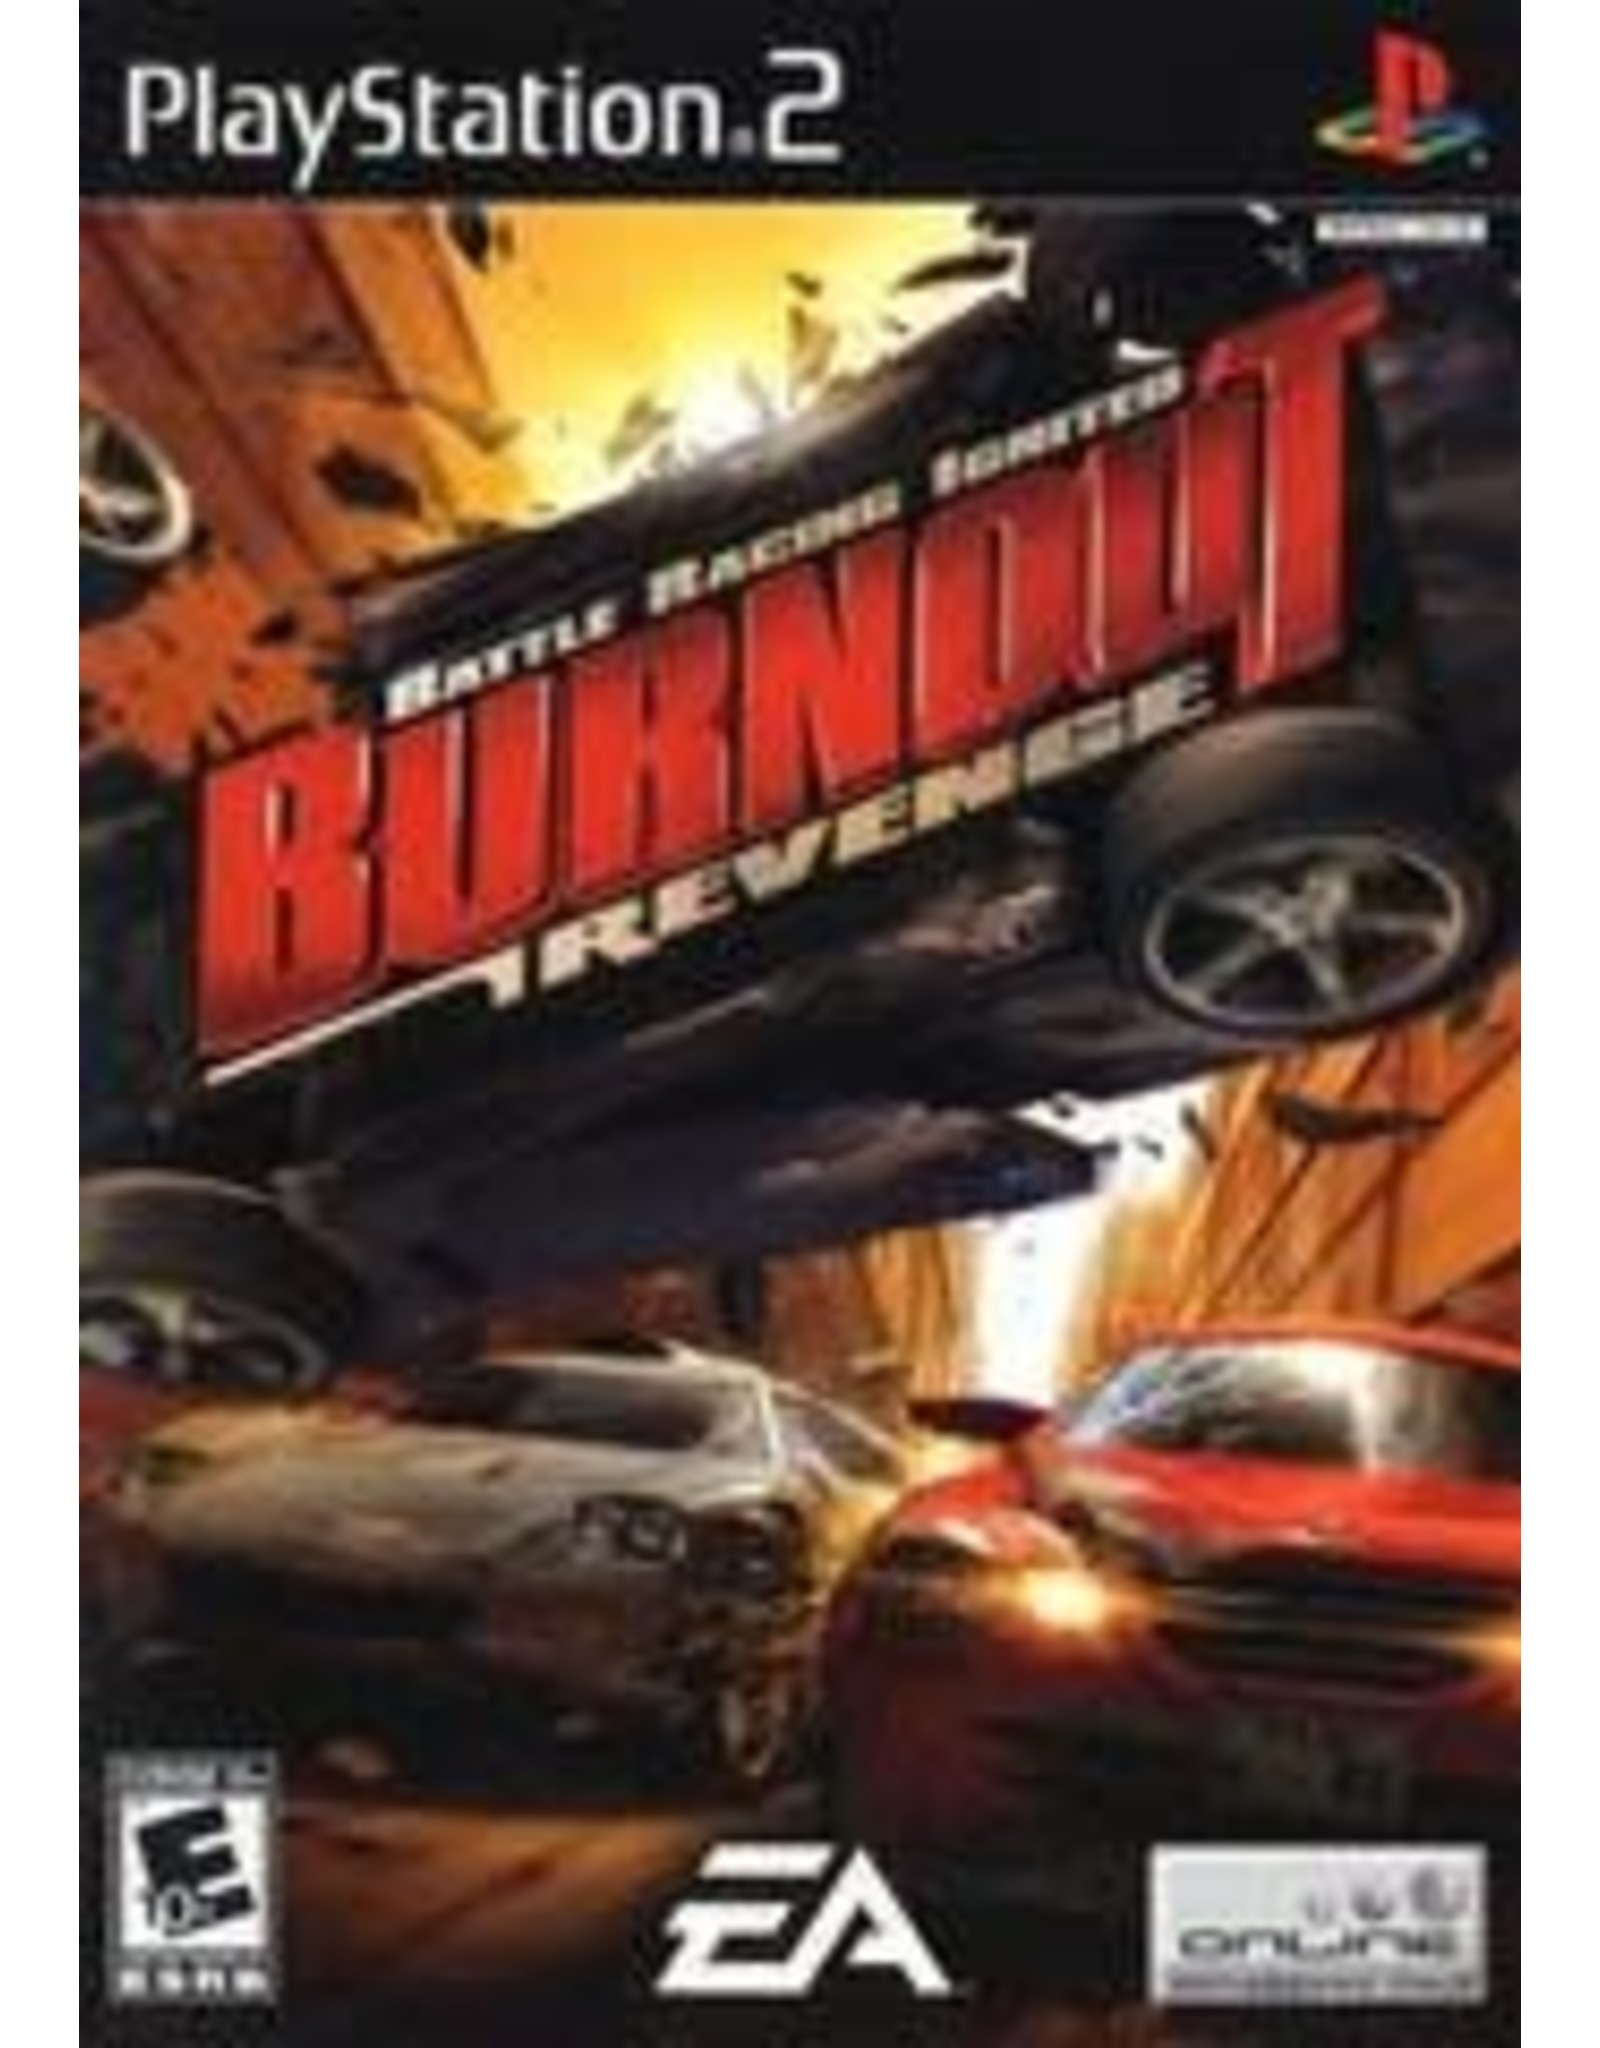 Playstation 2 Burnout Revenge (CiB)